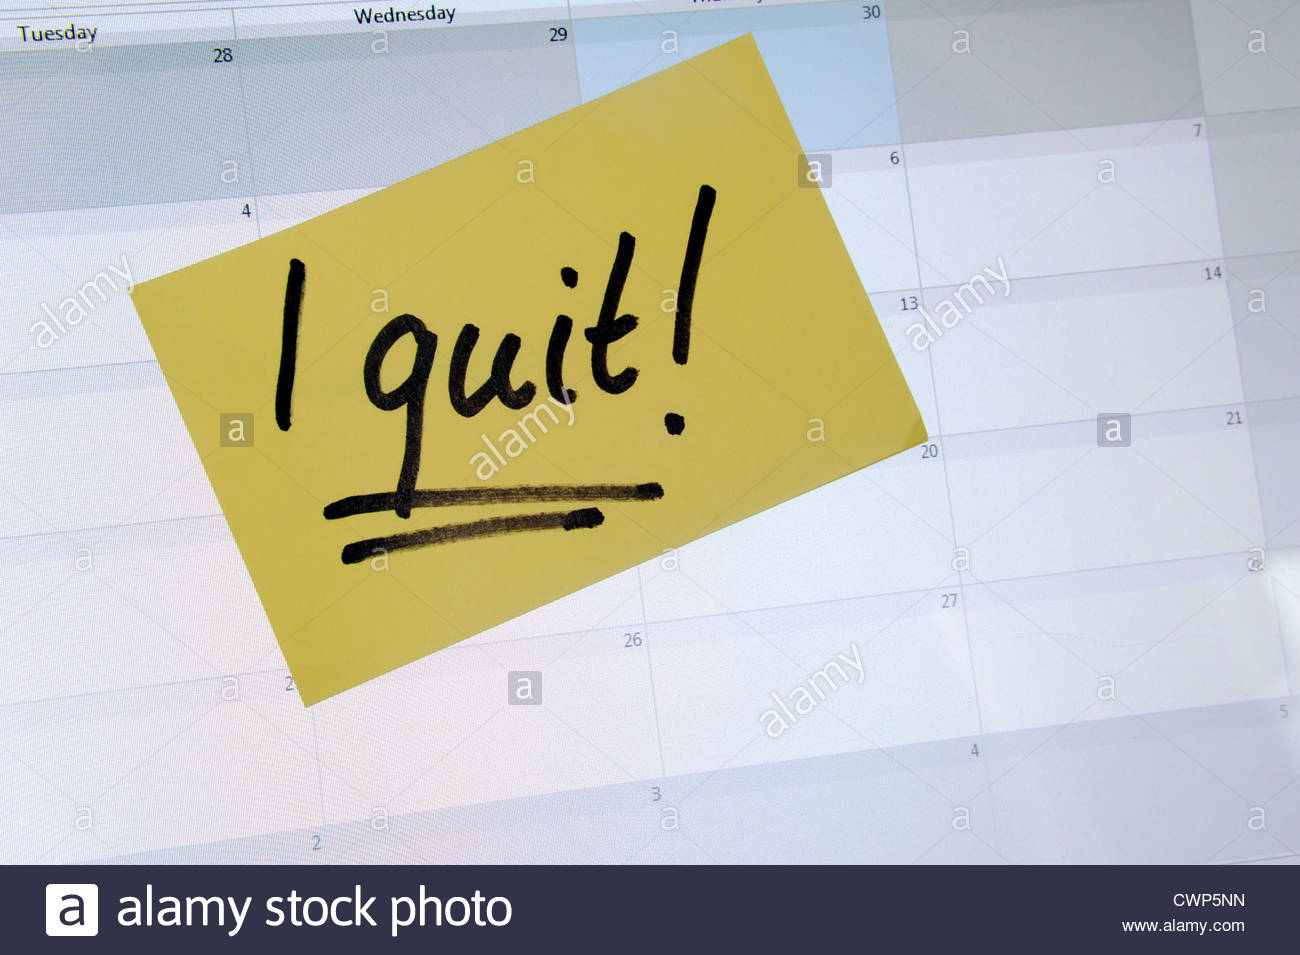 Post it note on a laptop computer agenda - I quit! - Stock Image